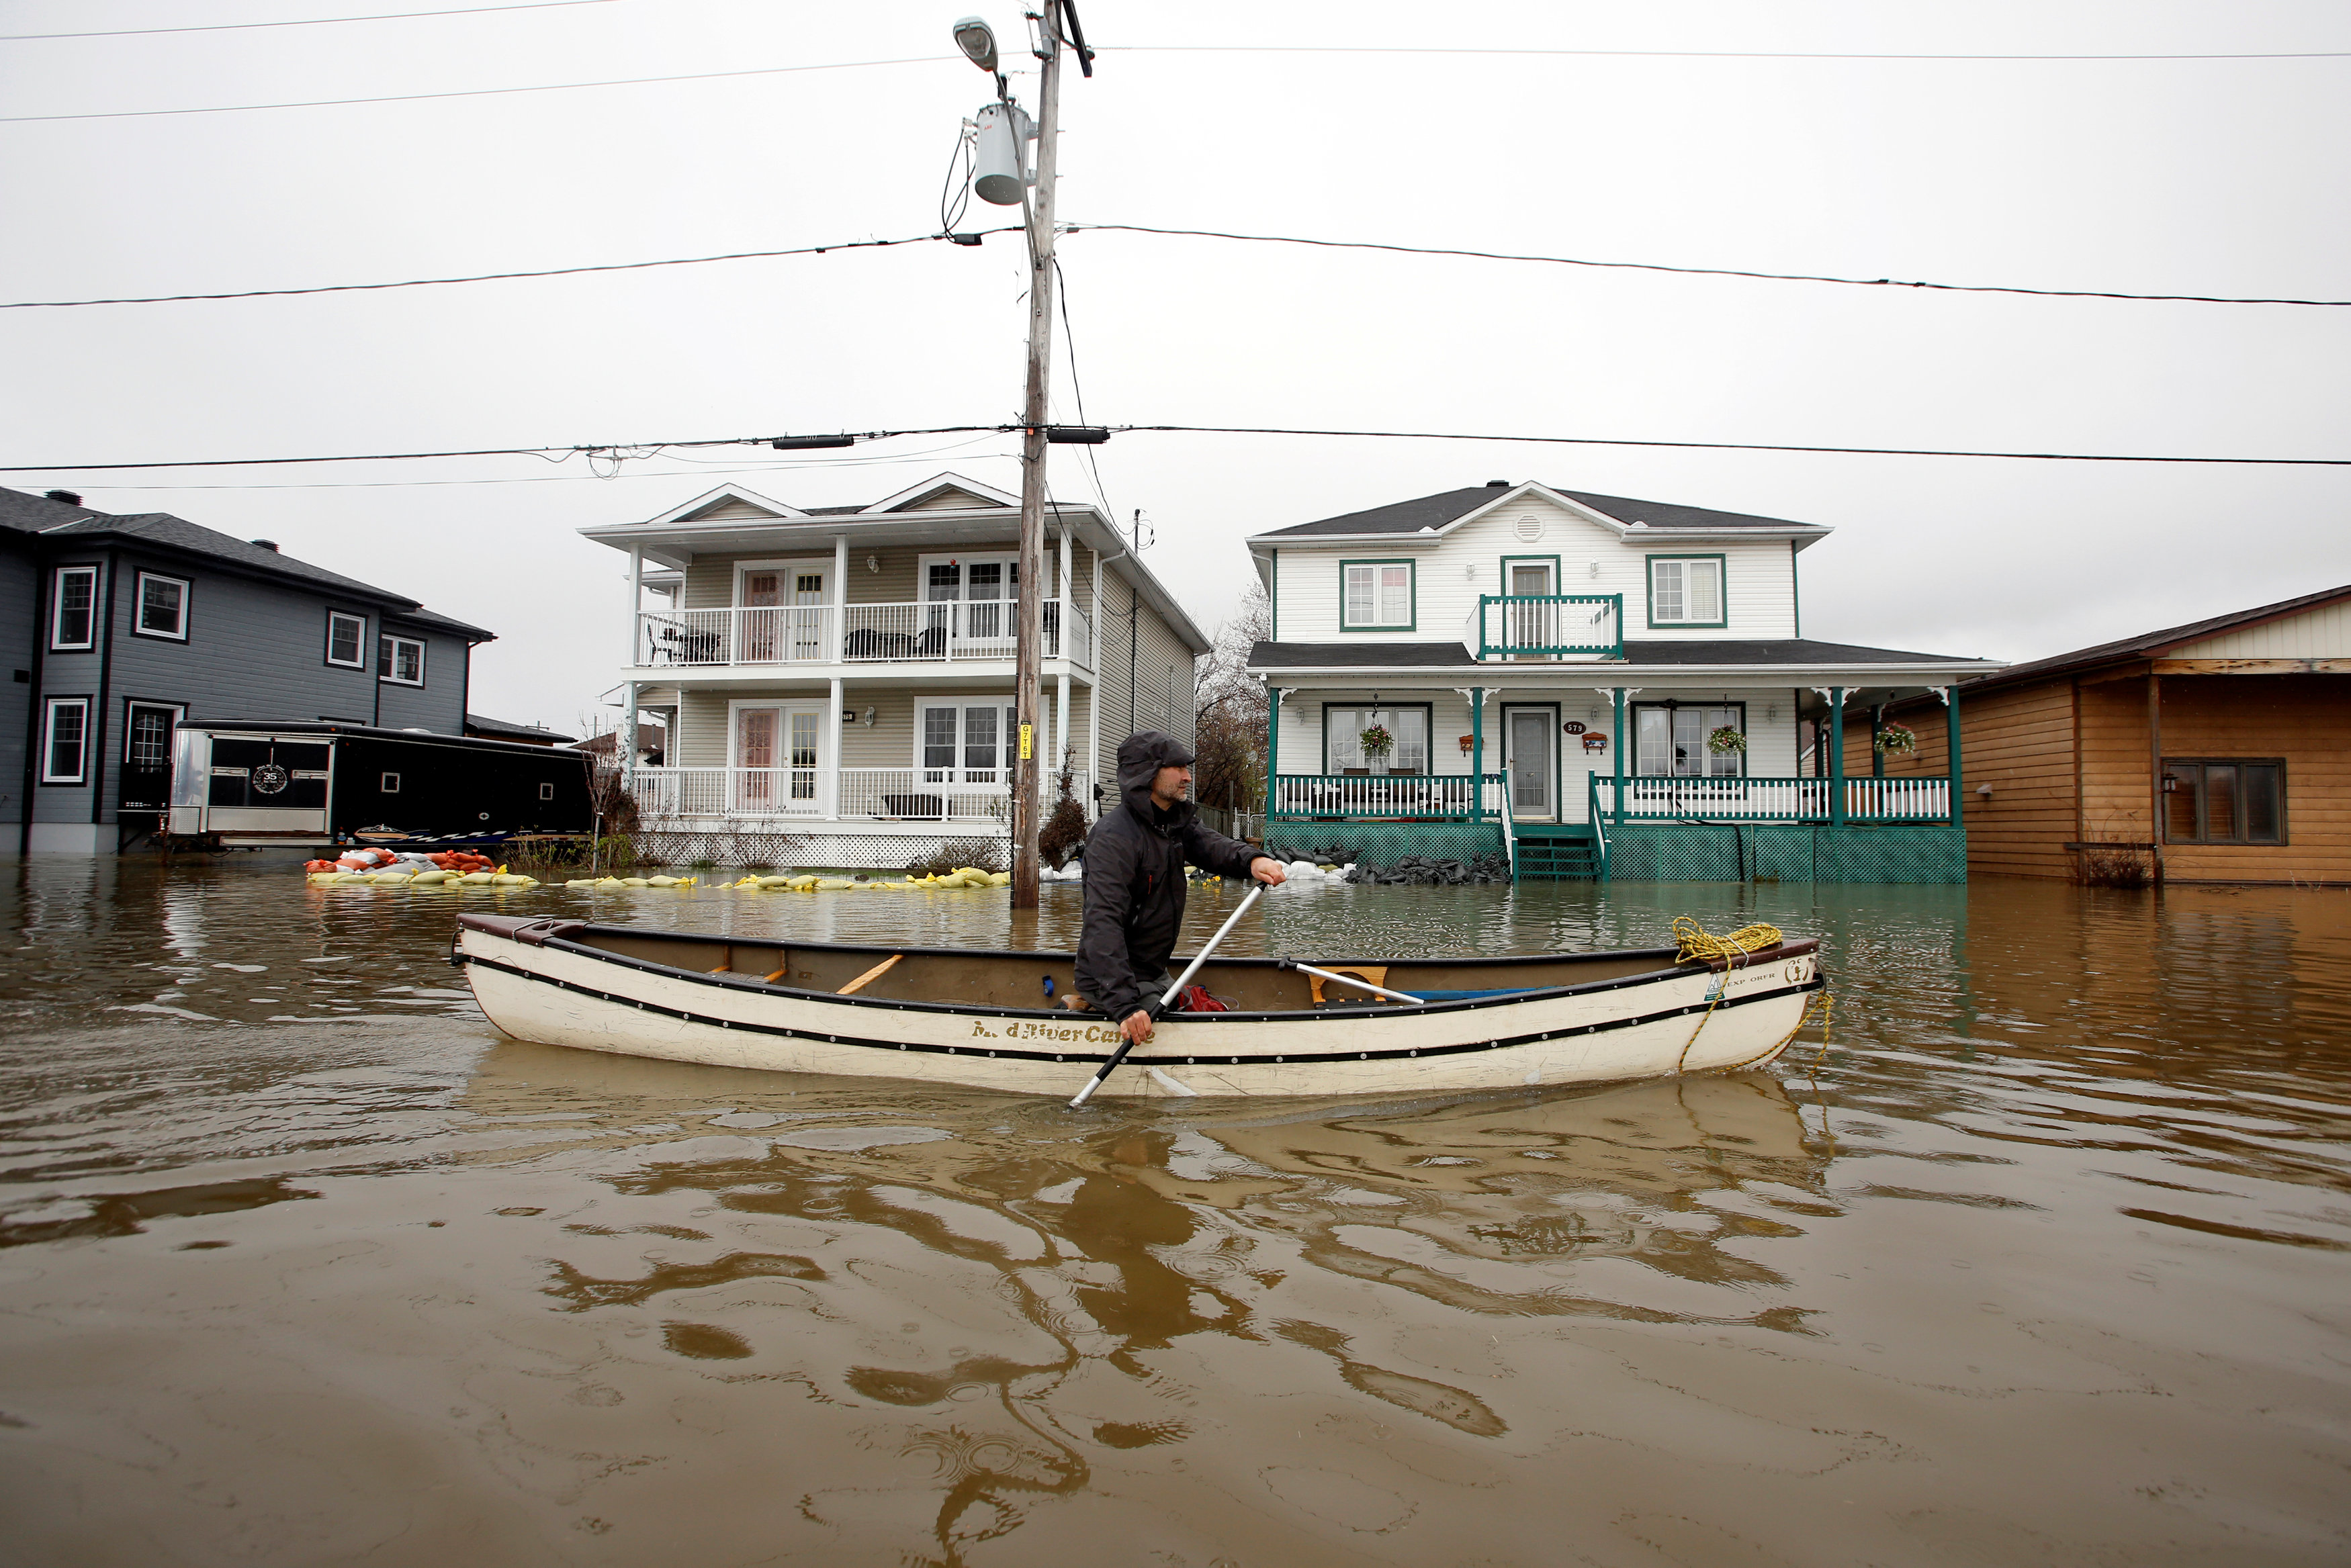 A man paddles a canoe in a flooded residential area in Gatineau, Quebec, Canada